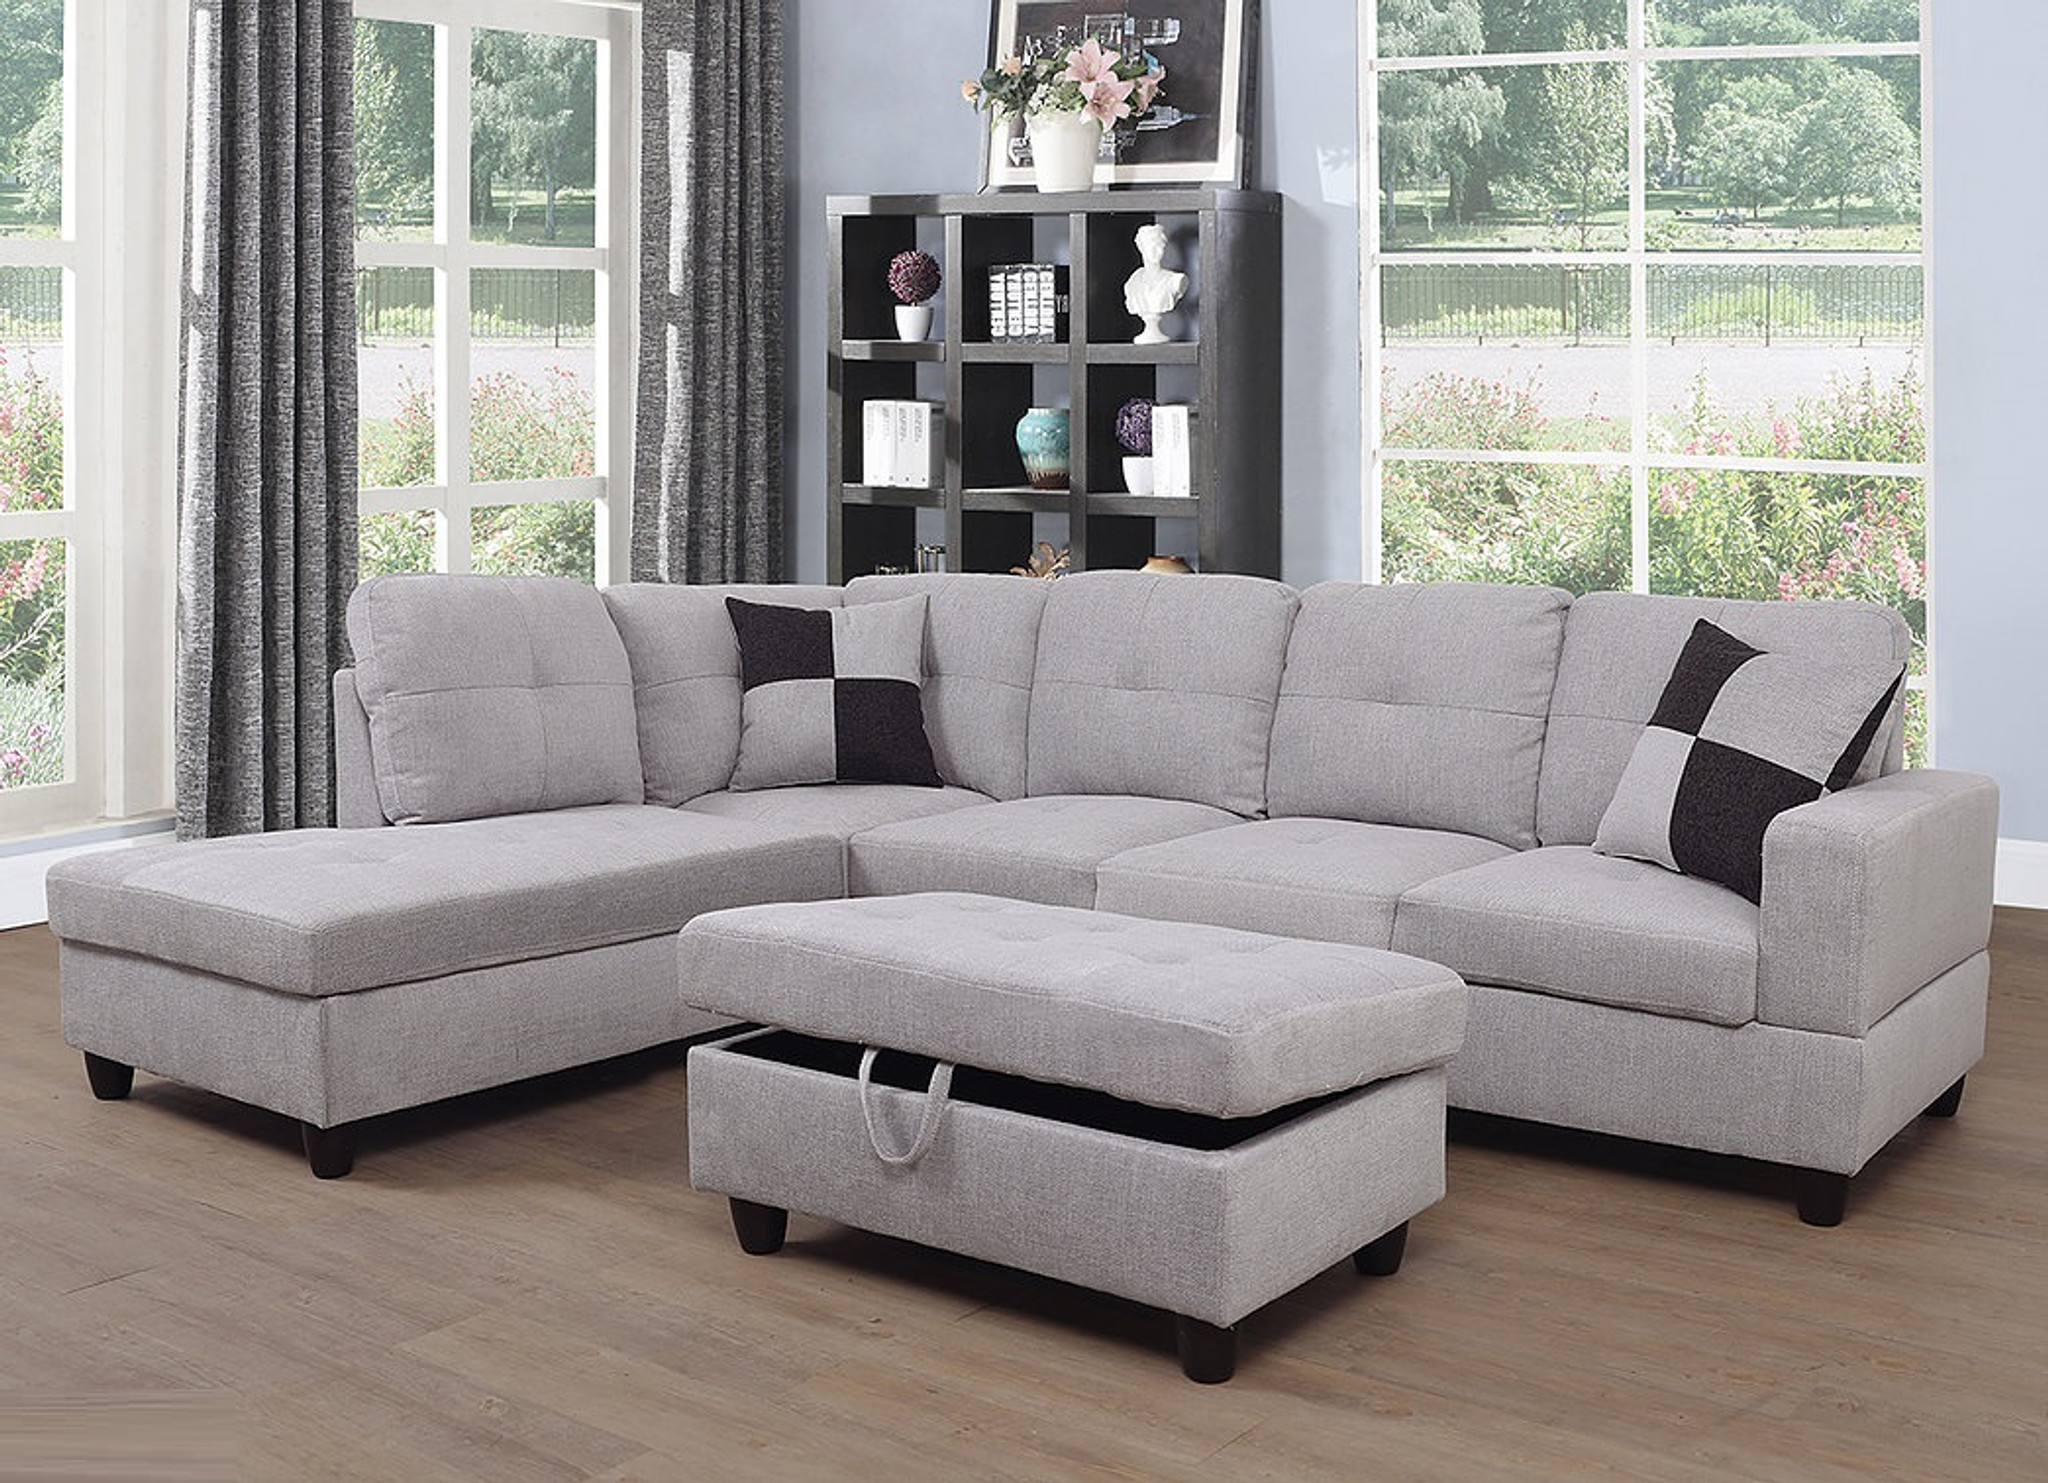 light gray color 3pcs fabric sectional sofa chaise and storage ottoman